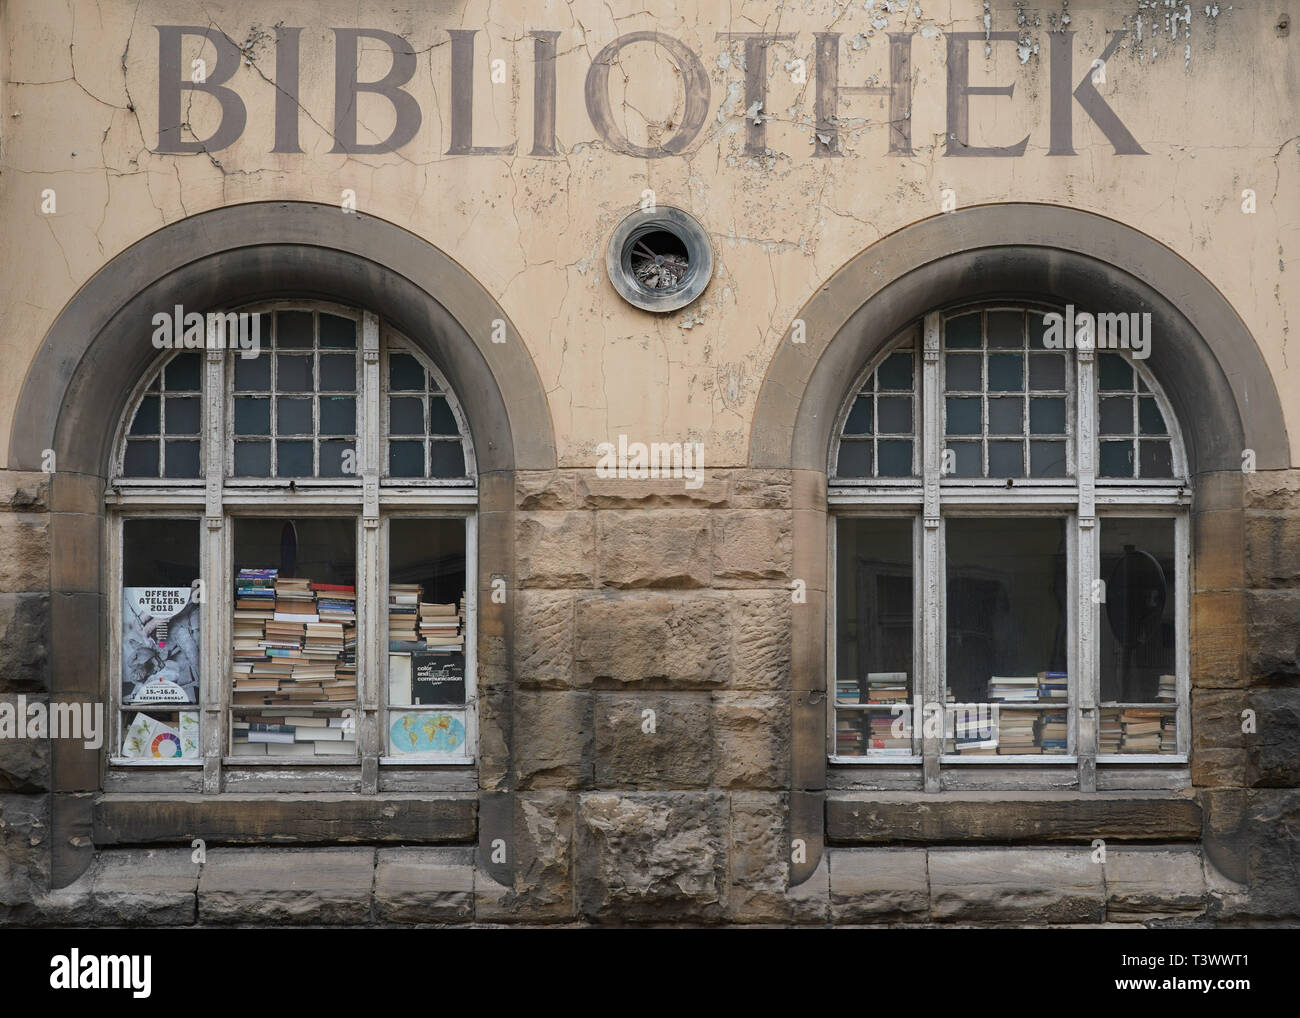 Zeitz, Germany. 26th Mar, 2019. A house with the lettering 'Bibliothek' on Rahnstraße in Zeitz. In a dpa discussion with a city tour, the mayor of Zeitz commented on topics such as coal withdrawal and structural change. (to dpa 'Hot topic coal: Zeitz wants to be 'cool' in the Central German Ruhr') Credit: Peter Endig/dpa/Alamy Live News - Stock Image